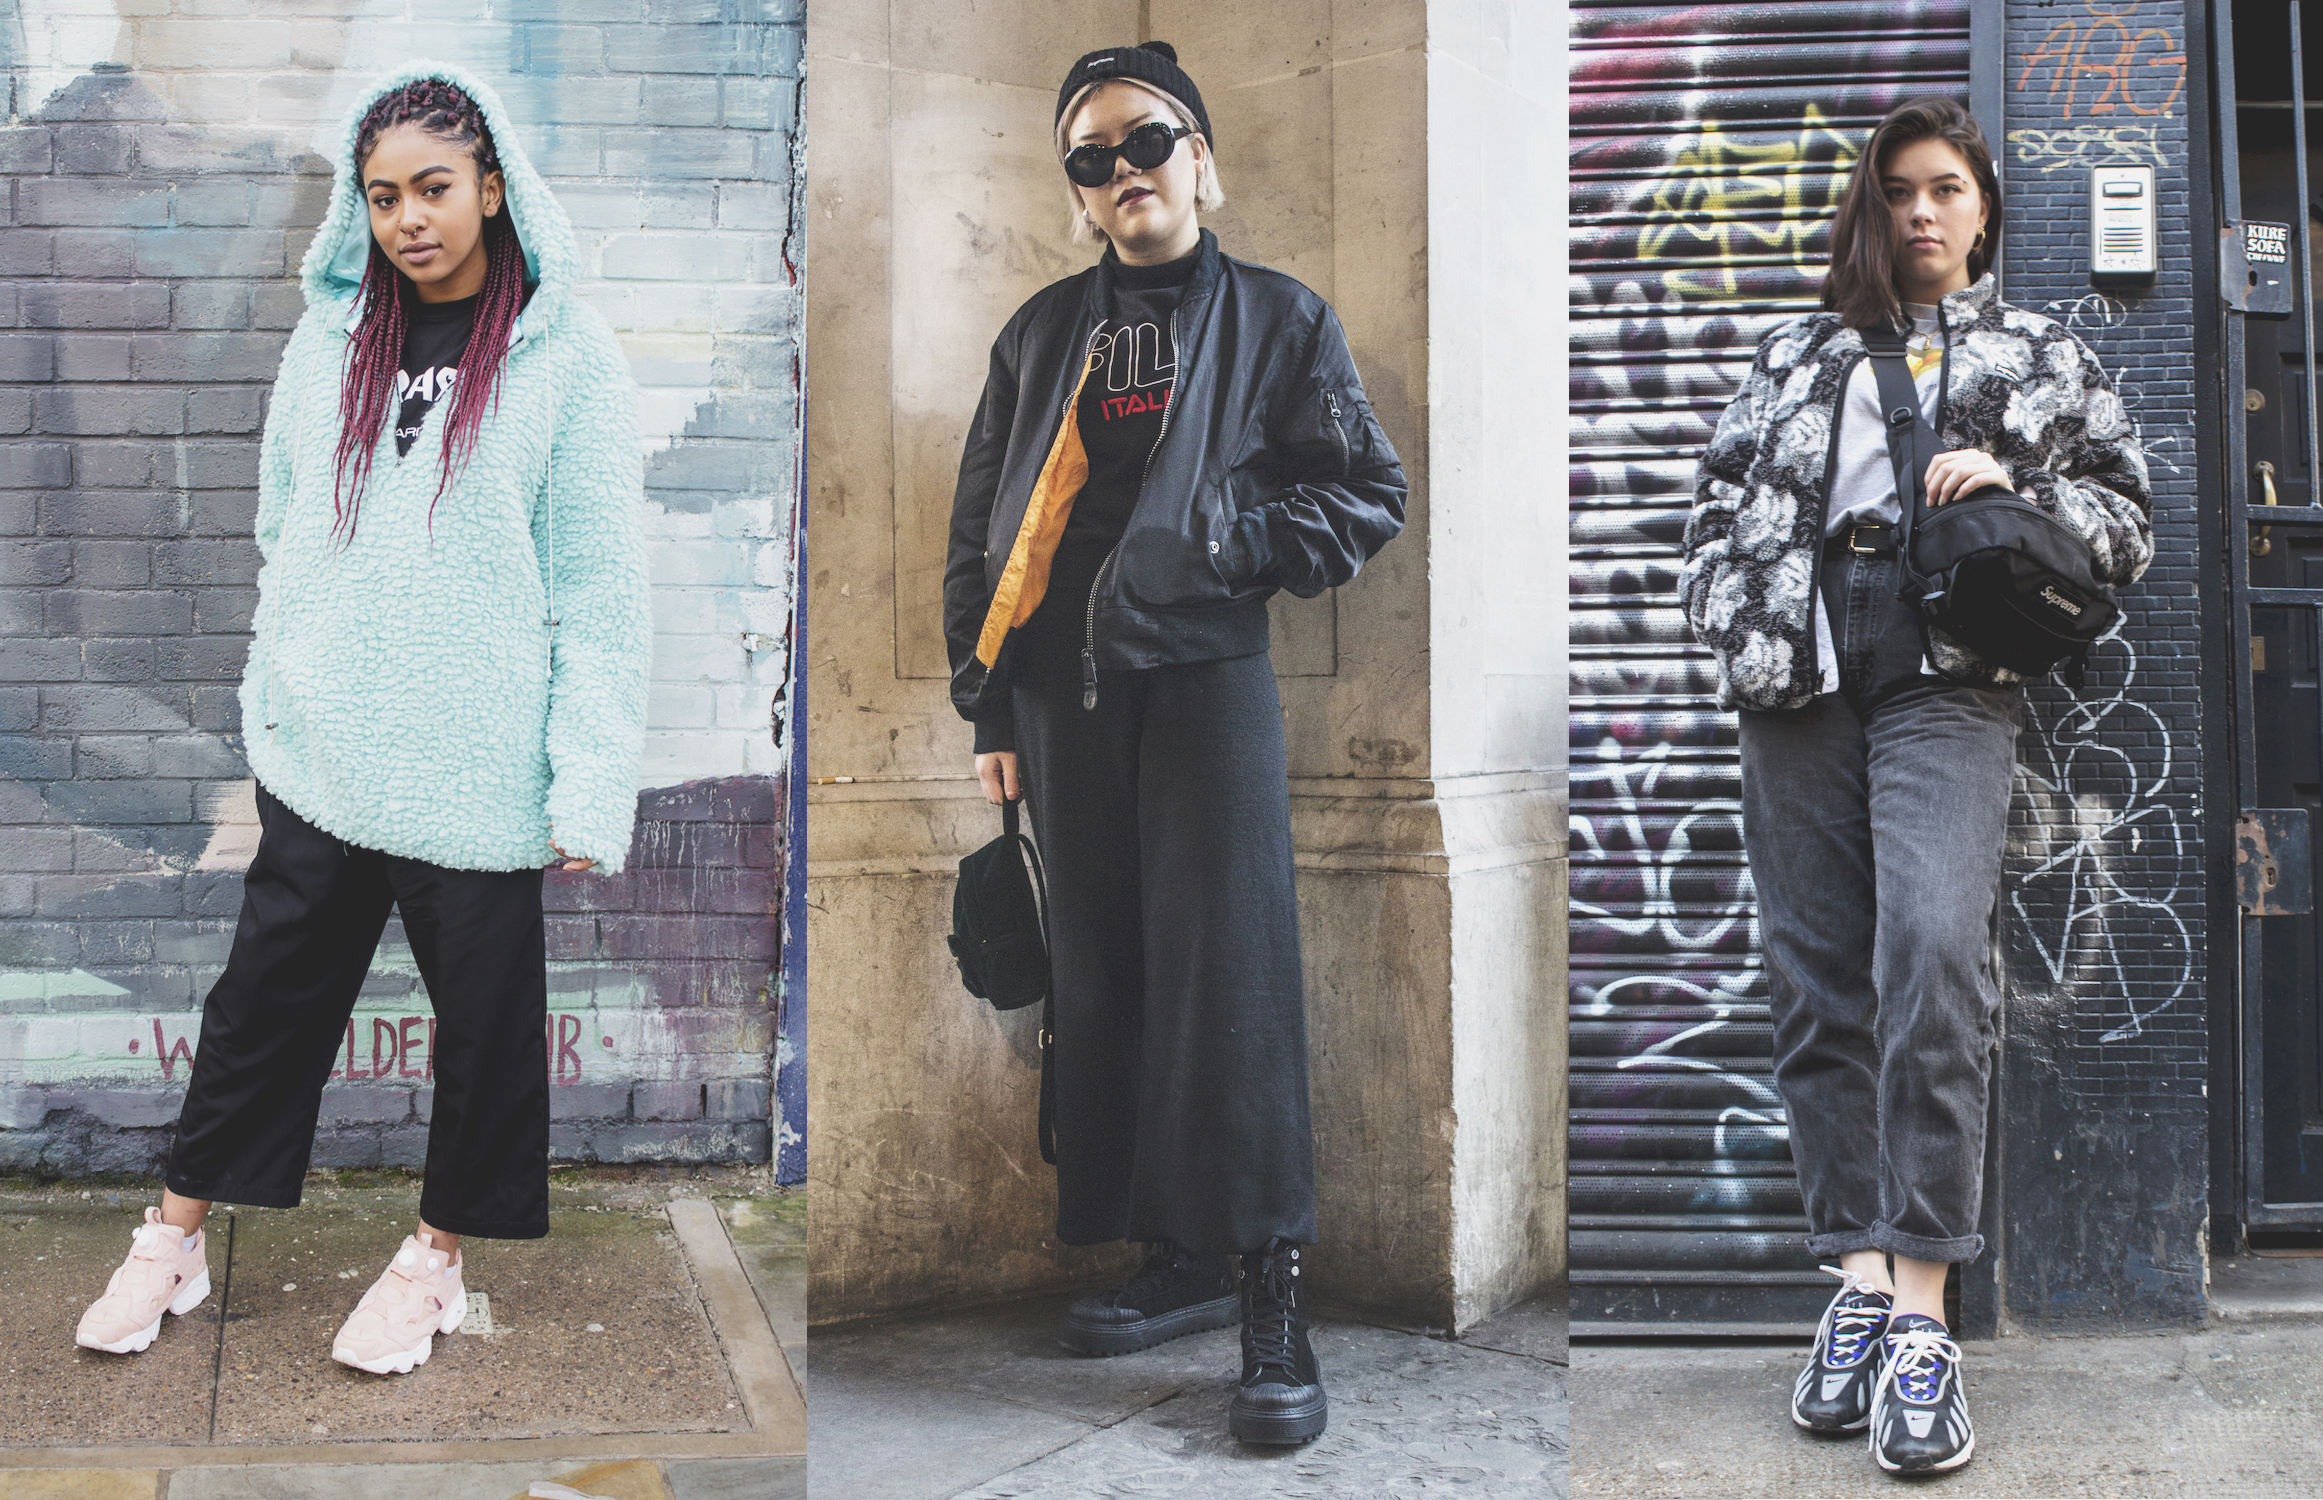 Street Style: PAUSE Interviews Six Girls From Streets